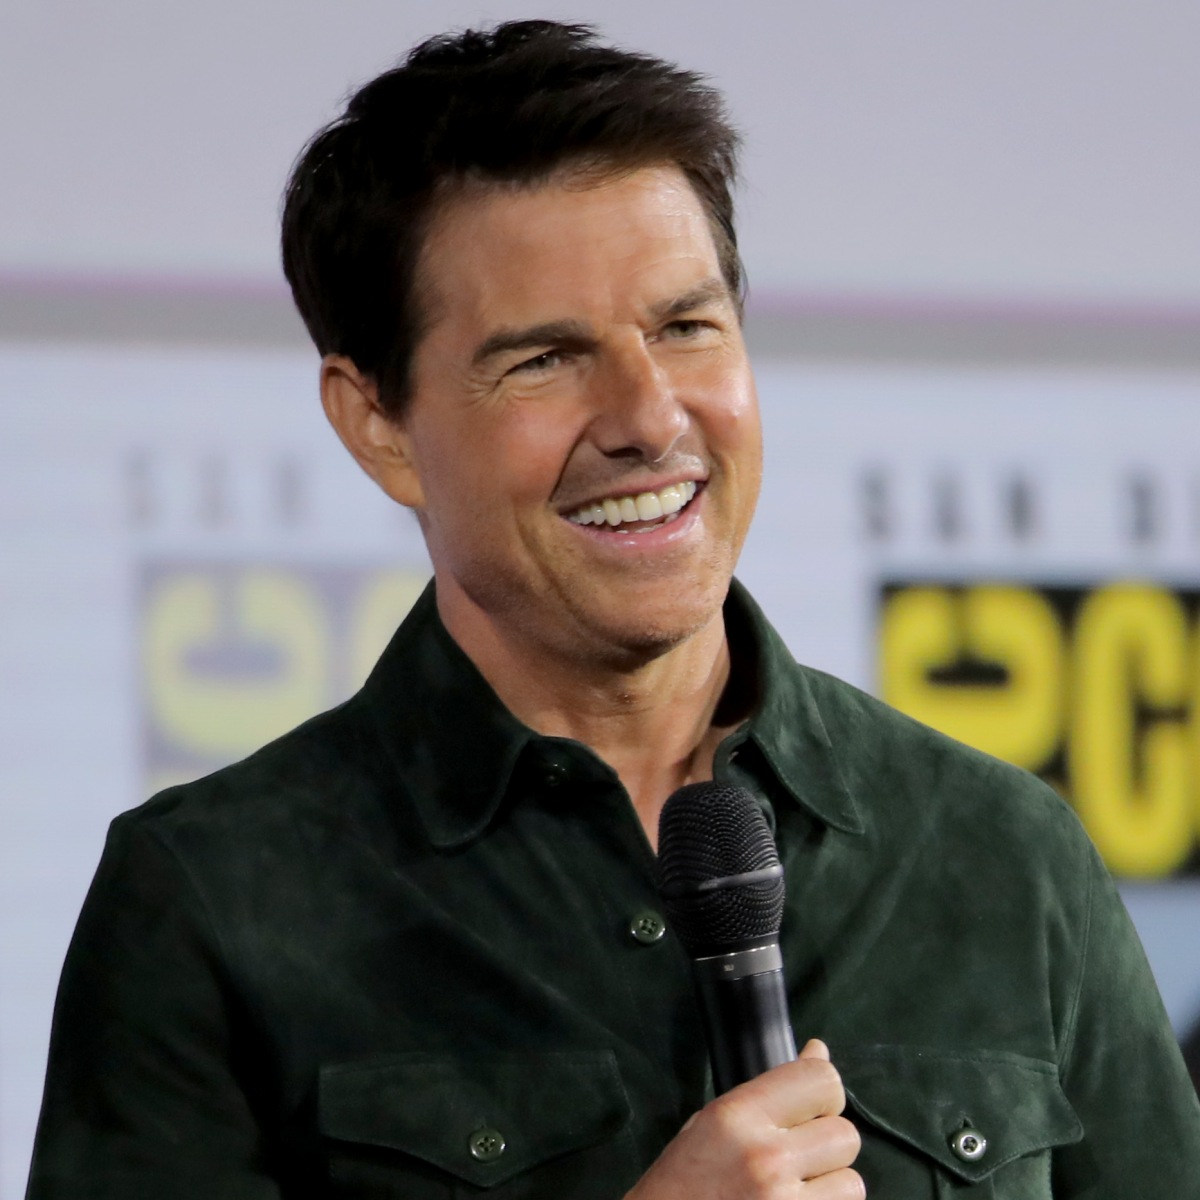 Tom Cruise Has One of Hollywood's Most Famous Smiles! See the Story Behind The Actor's 'Middle Tooth'